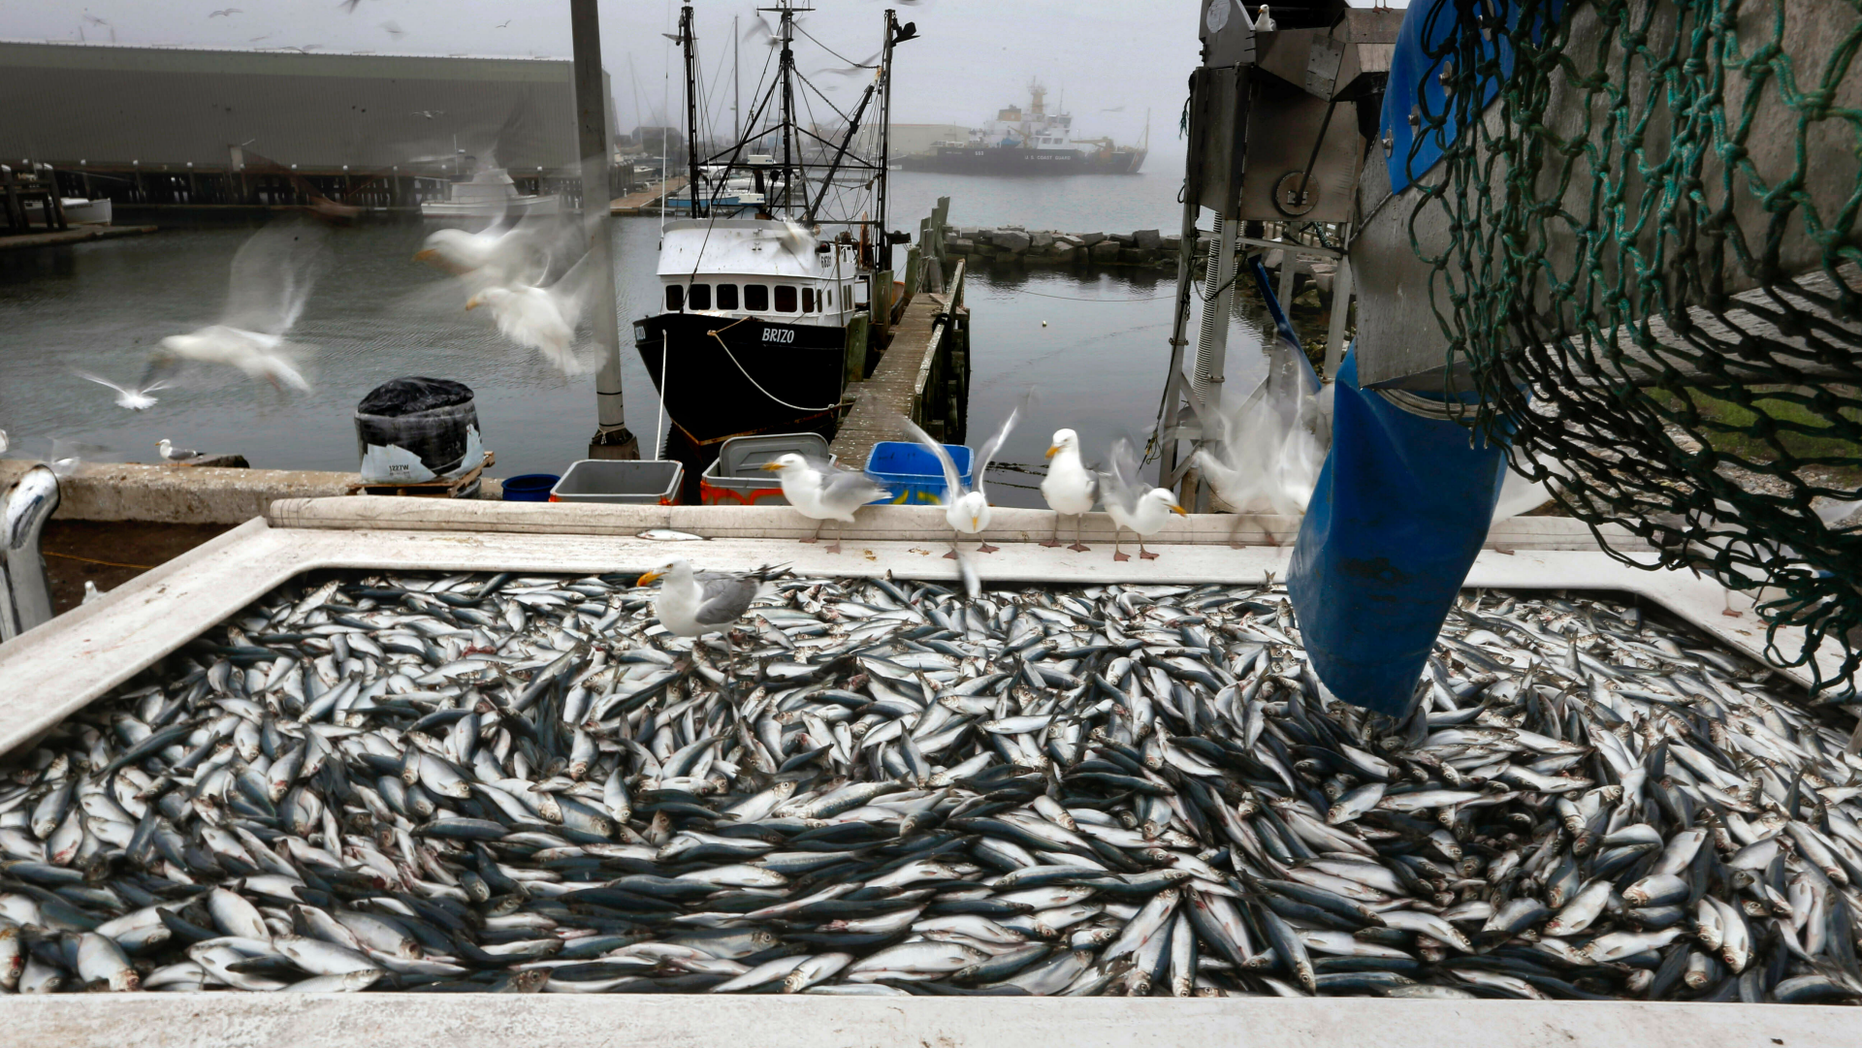 FILE - In this July 8, 2015 file photo, herring are unloaded from a fishing boat in Rockland, Maine. Herring are the most important bait source for the lobster fishery. Regulators are contending with a drop in the herring population on the East Coast. Cuts in the catch quota will mean the total haul for 2019 will be less than a fifth of the 2014 harvest. (AP Photo/Robert F. Bukaty, File)